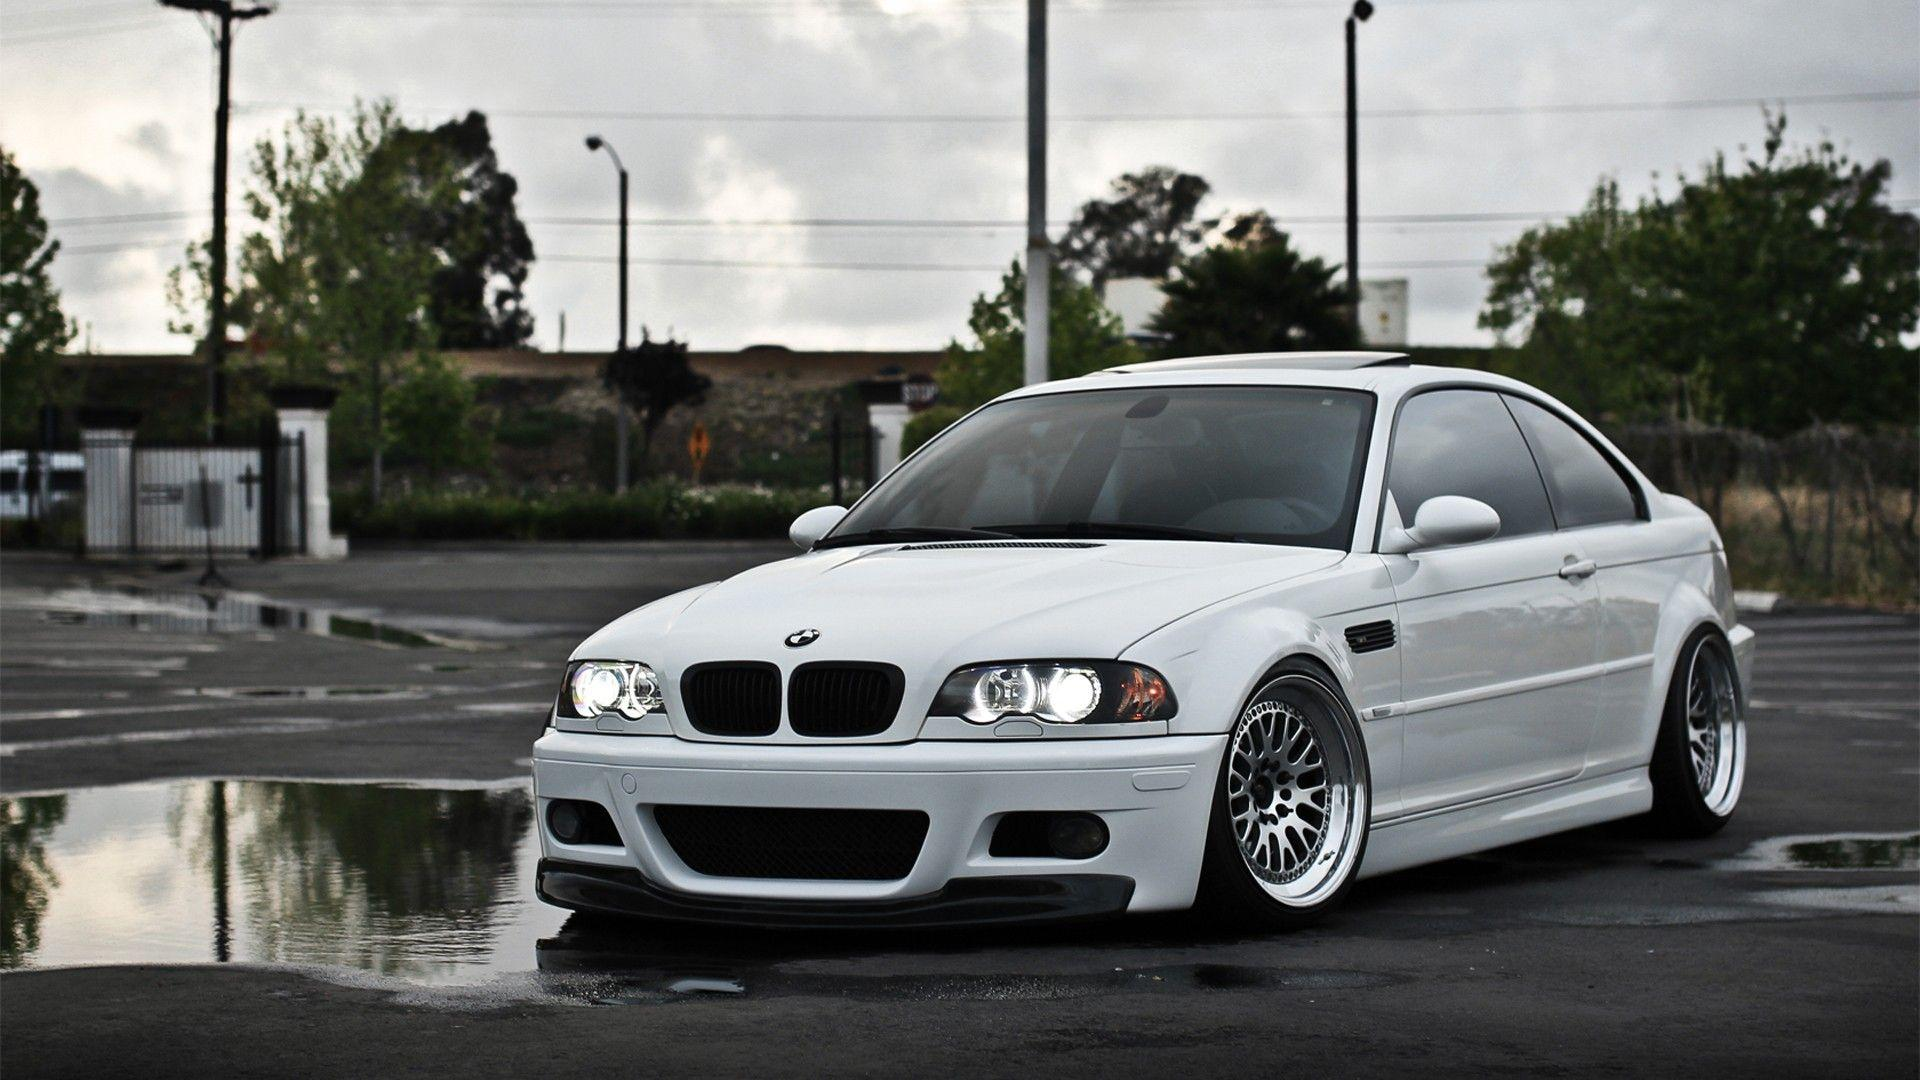 ... 2014 Bmw M3 E46 Front Crystal City Car 2014 Bmw M3 Back Crystal .